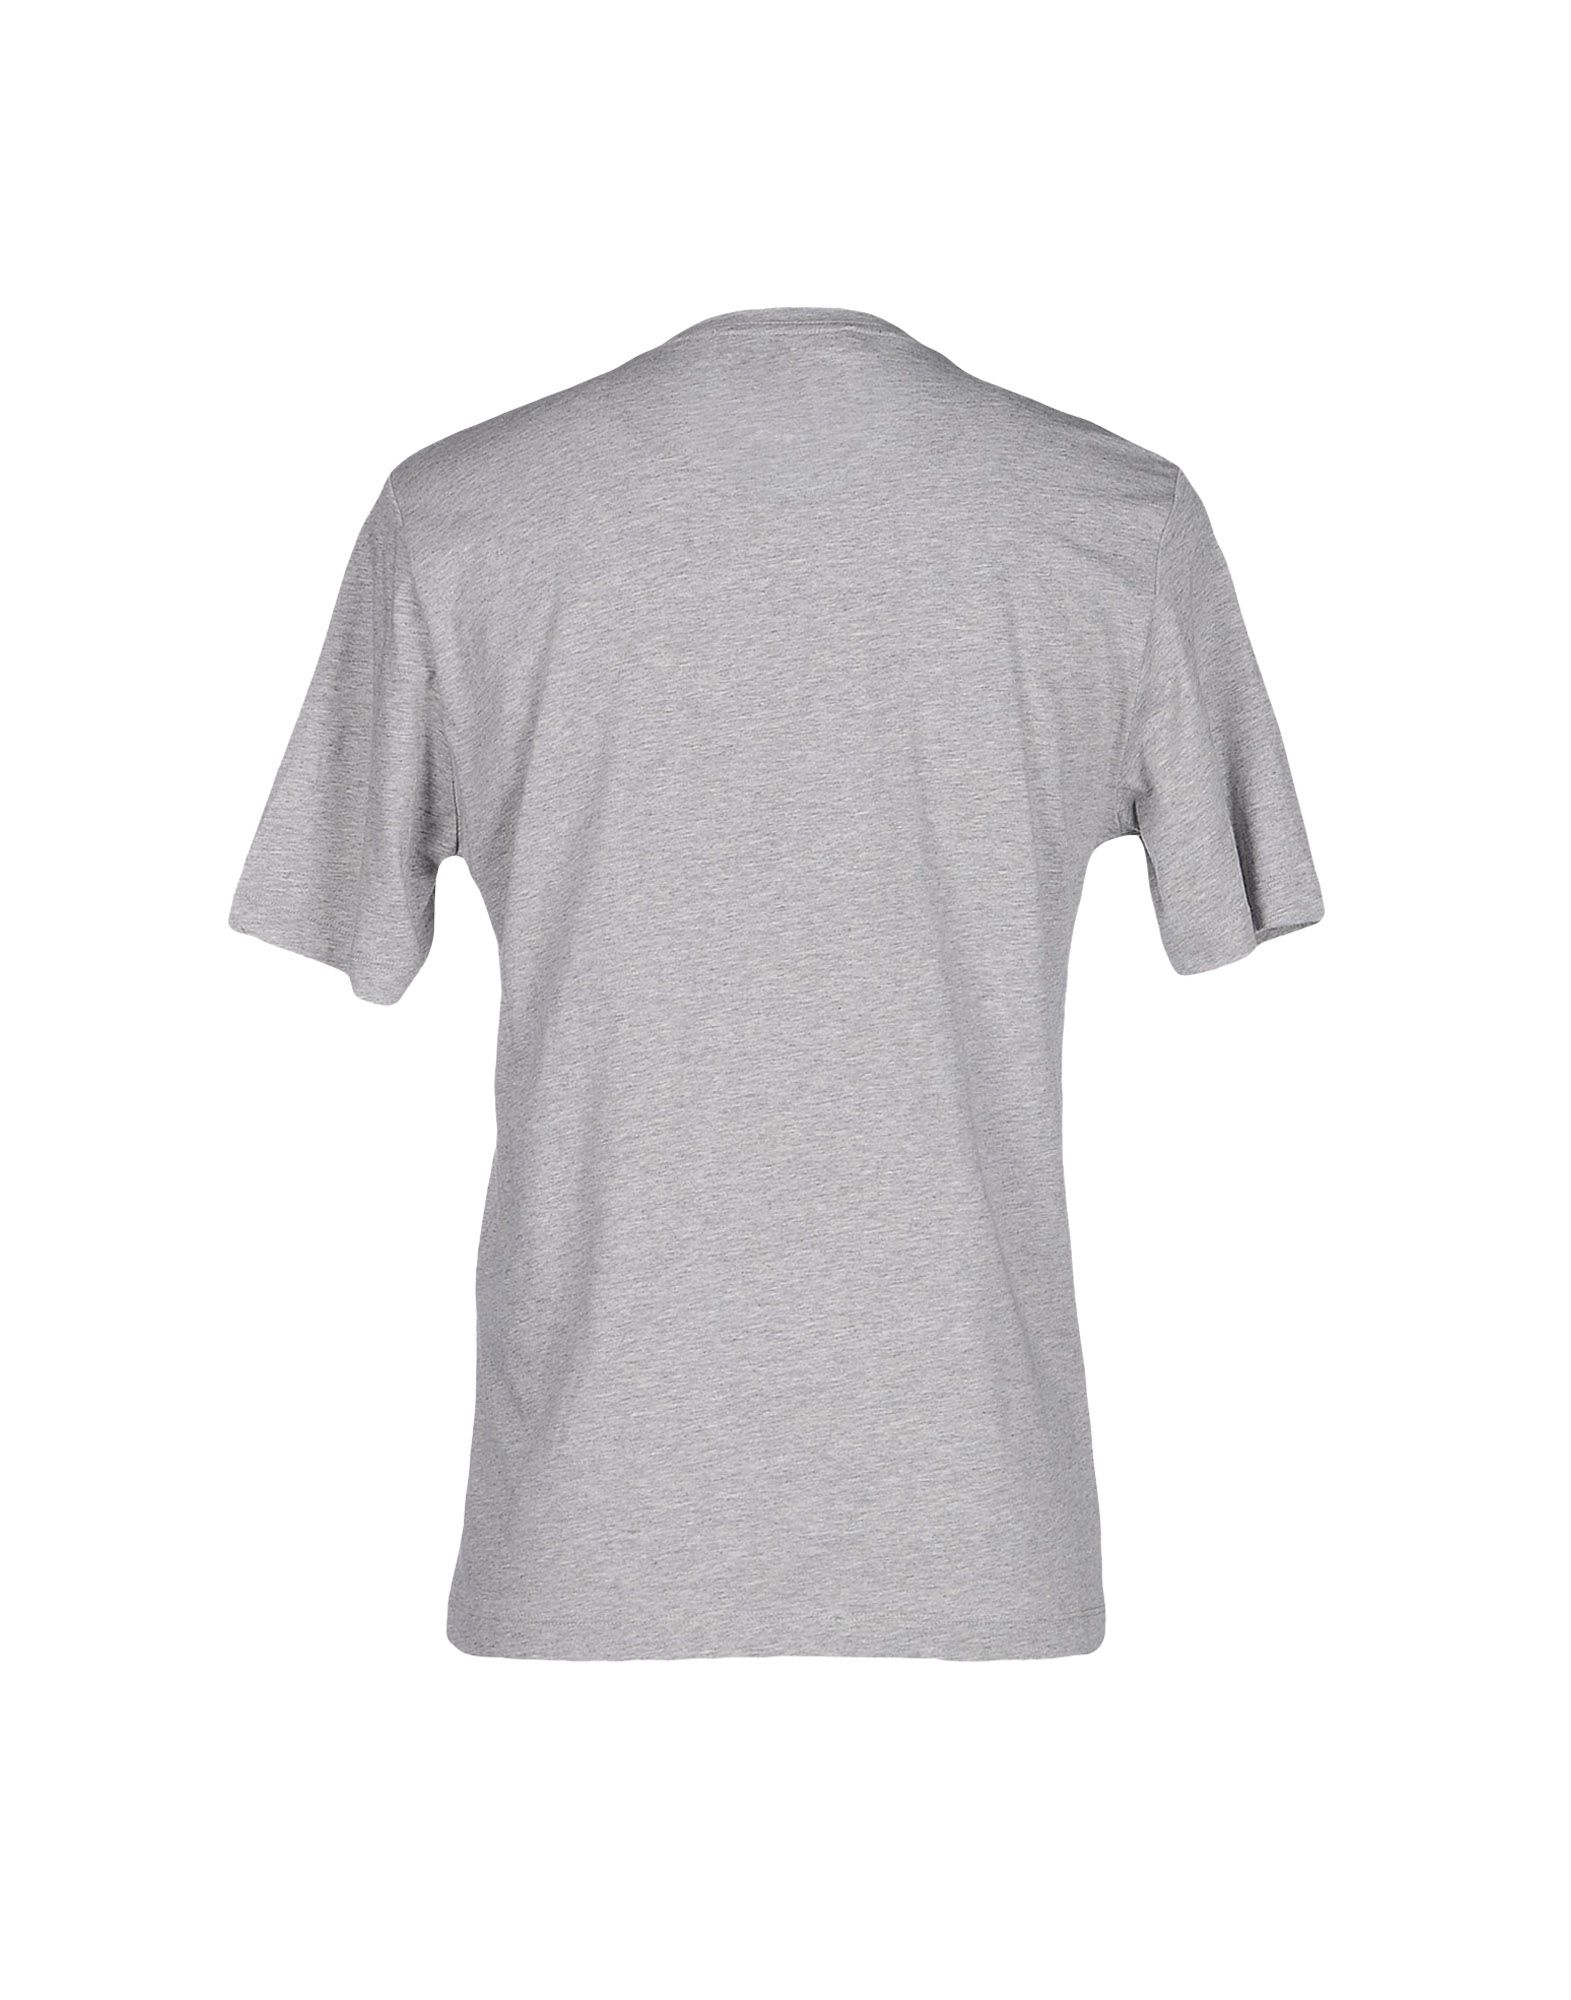 lyst love moschino t shirt in gray for men. Black Bedroom Furniture Sets. Home Design Ideas